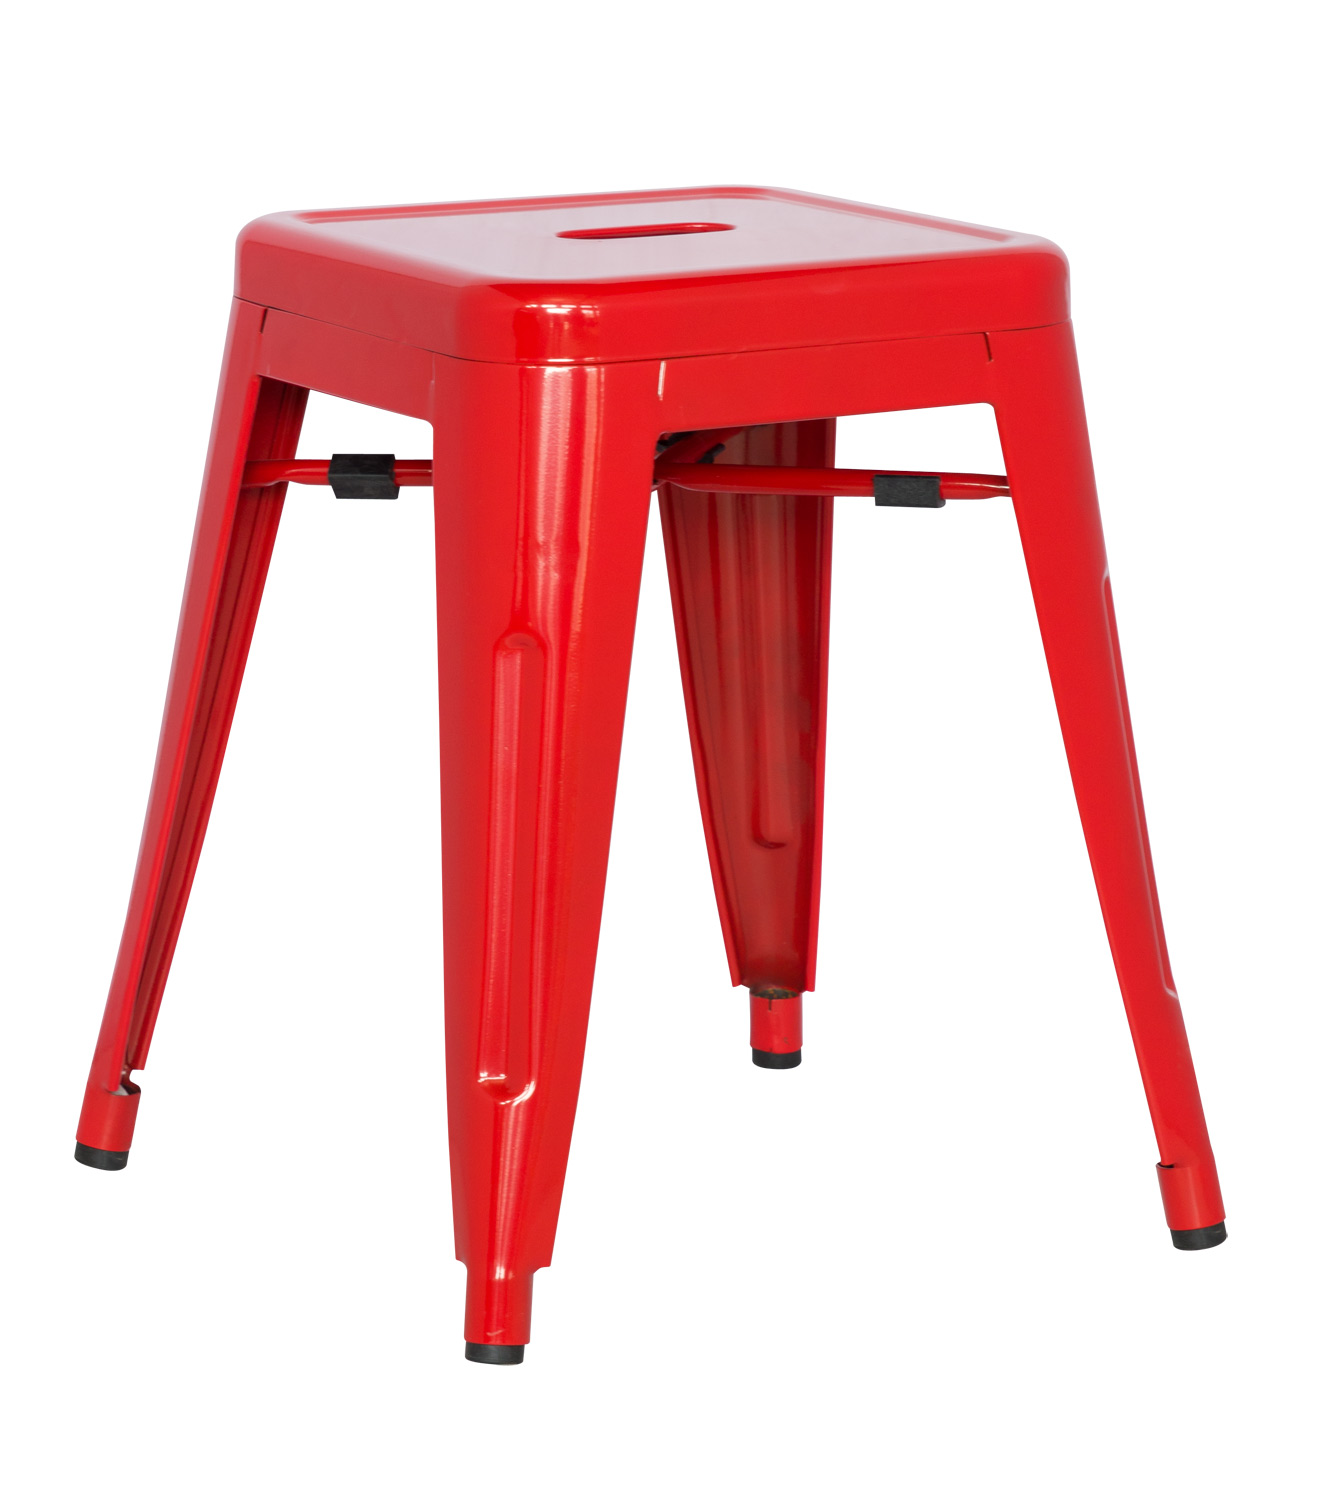 Chintaly Imports 8018 Galvanized Steel Side Chair - Red